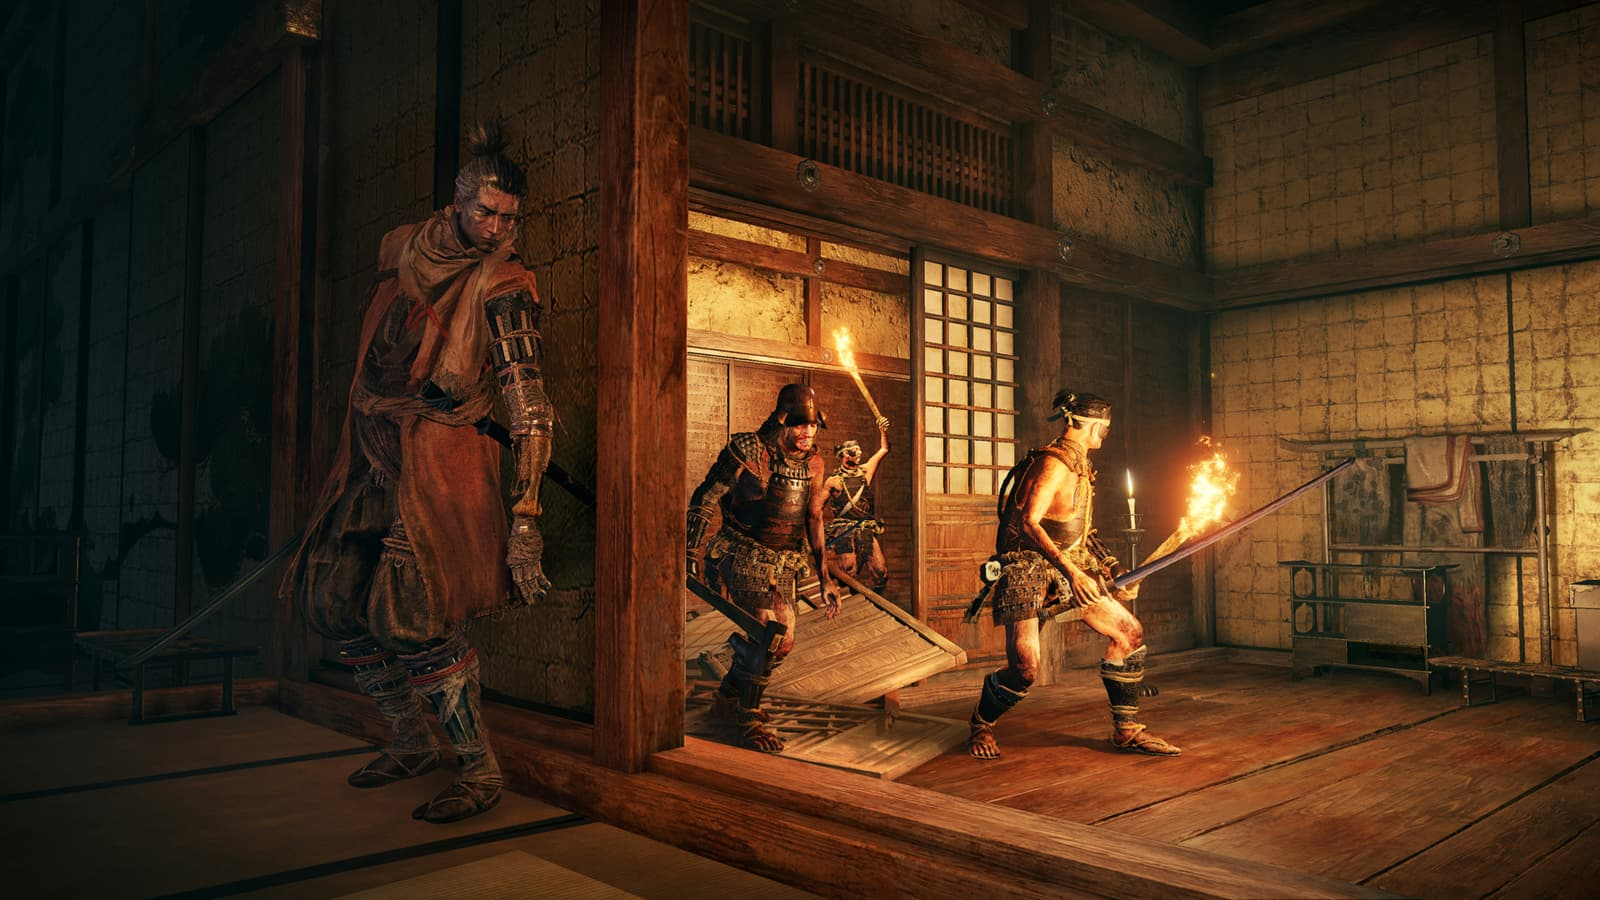 Sekiro trap is hilarious, killing streamers left and right